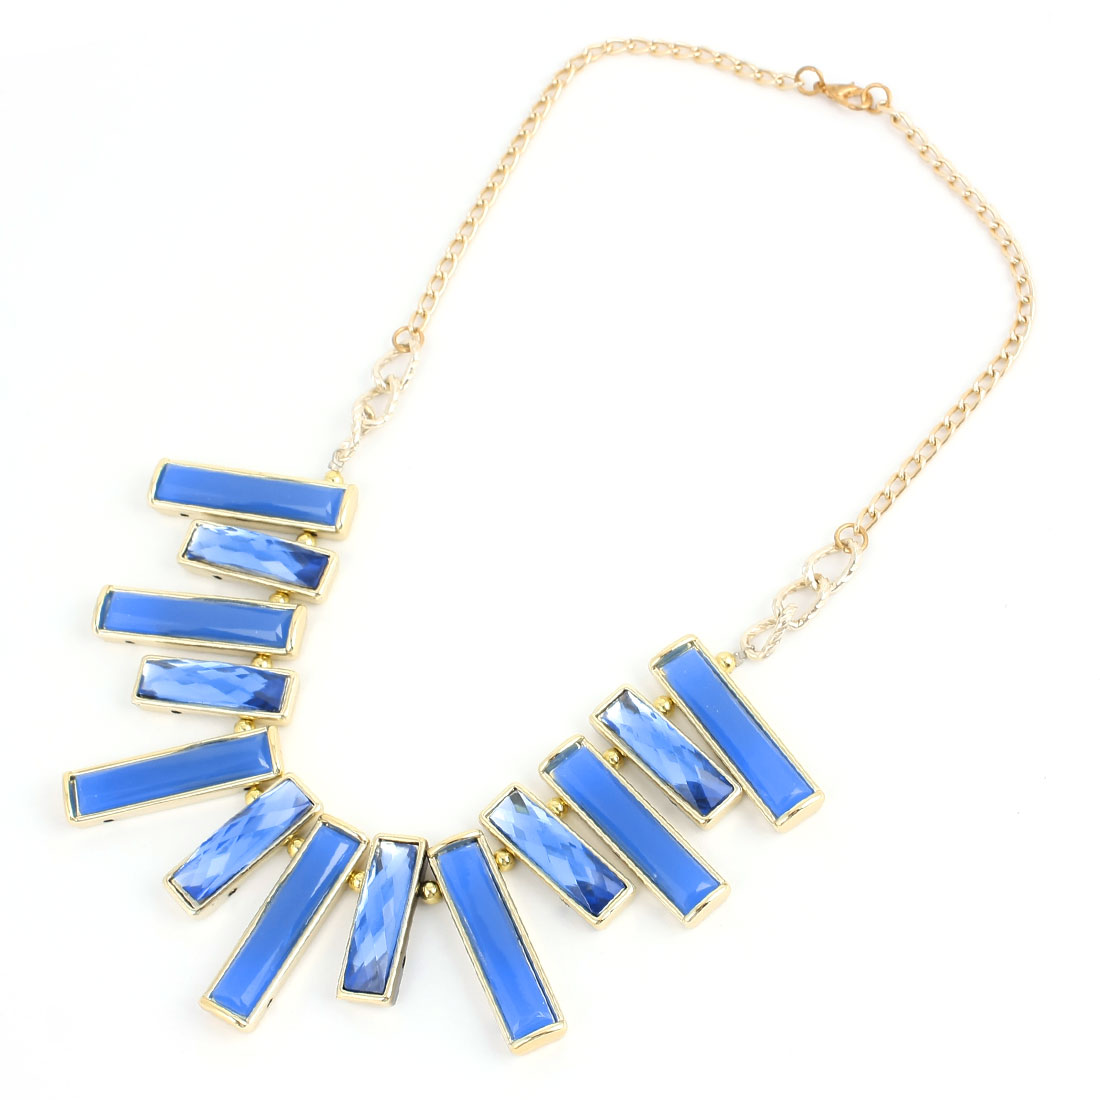 Blue Rectangle Shaped Beads Necklace Decoration for Ladies Woman